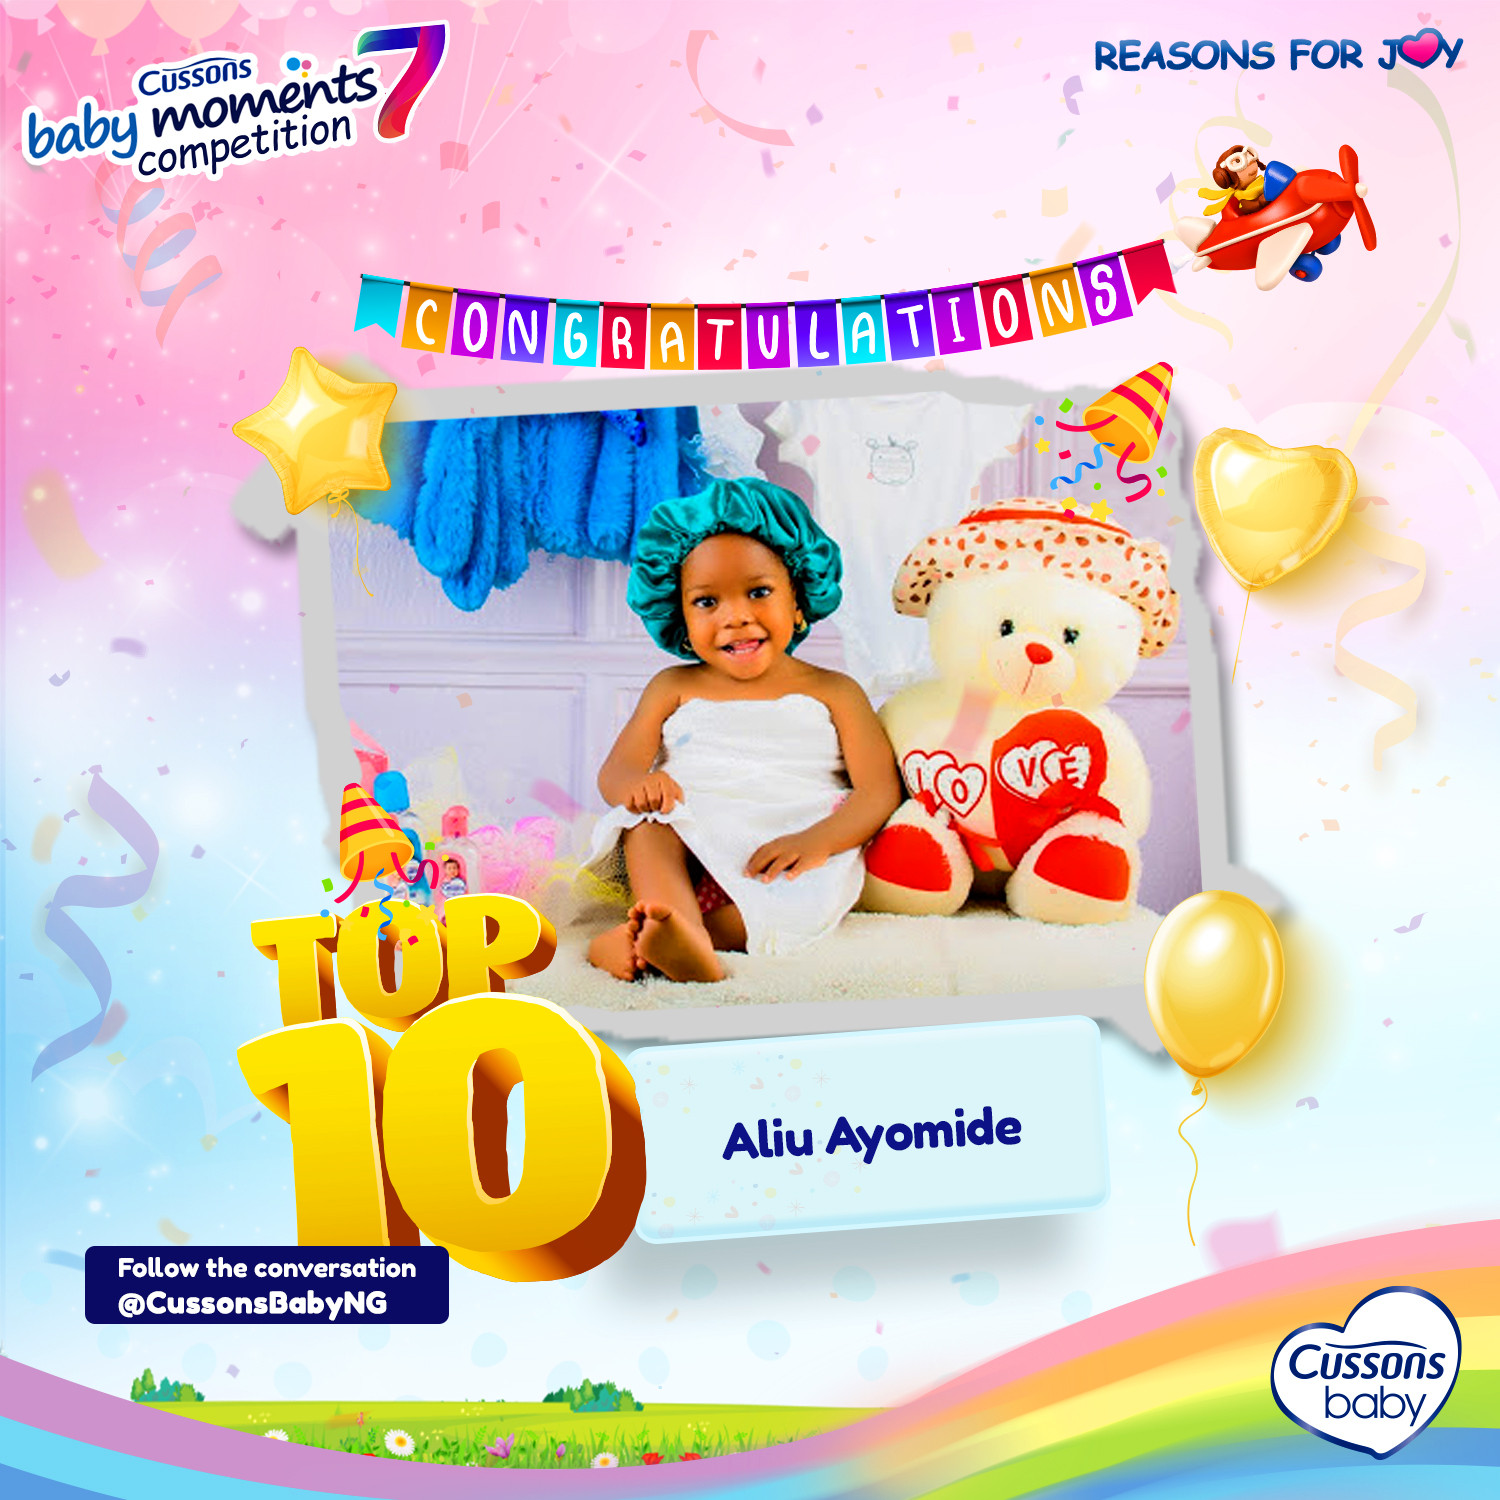 CUSSONS BABY MOMENTS SEASON 7 – MEET THE TOP 10 FINALISTS! (PHOTOS)